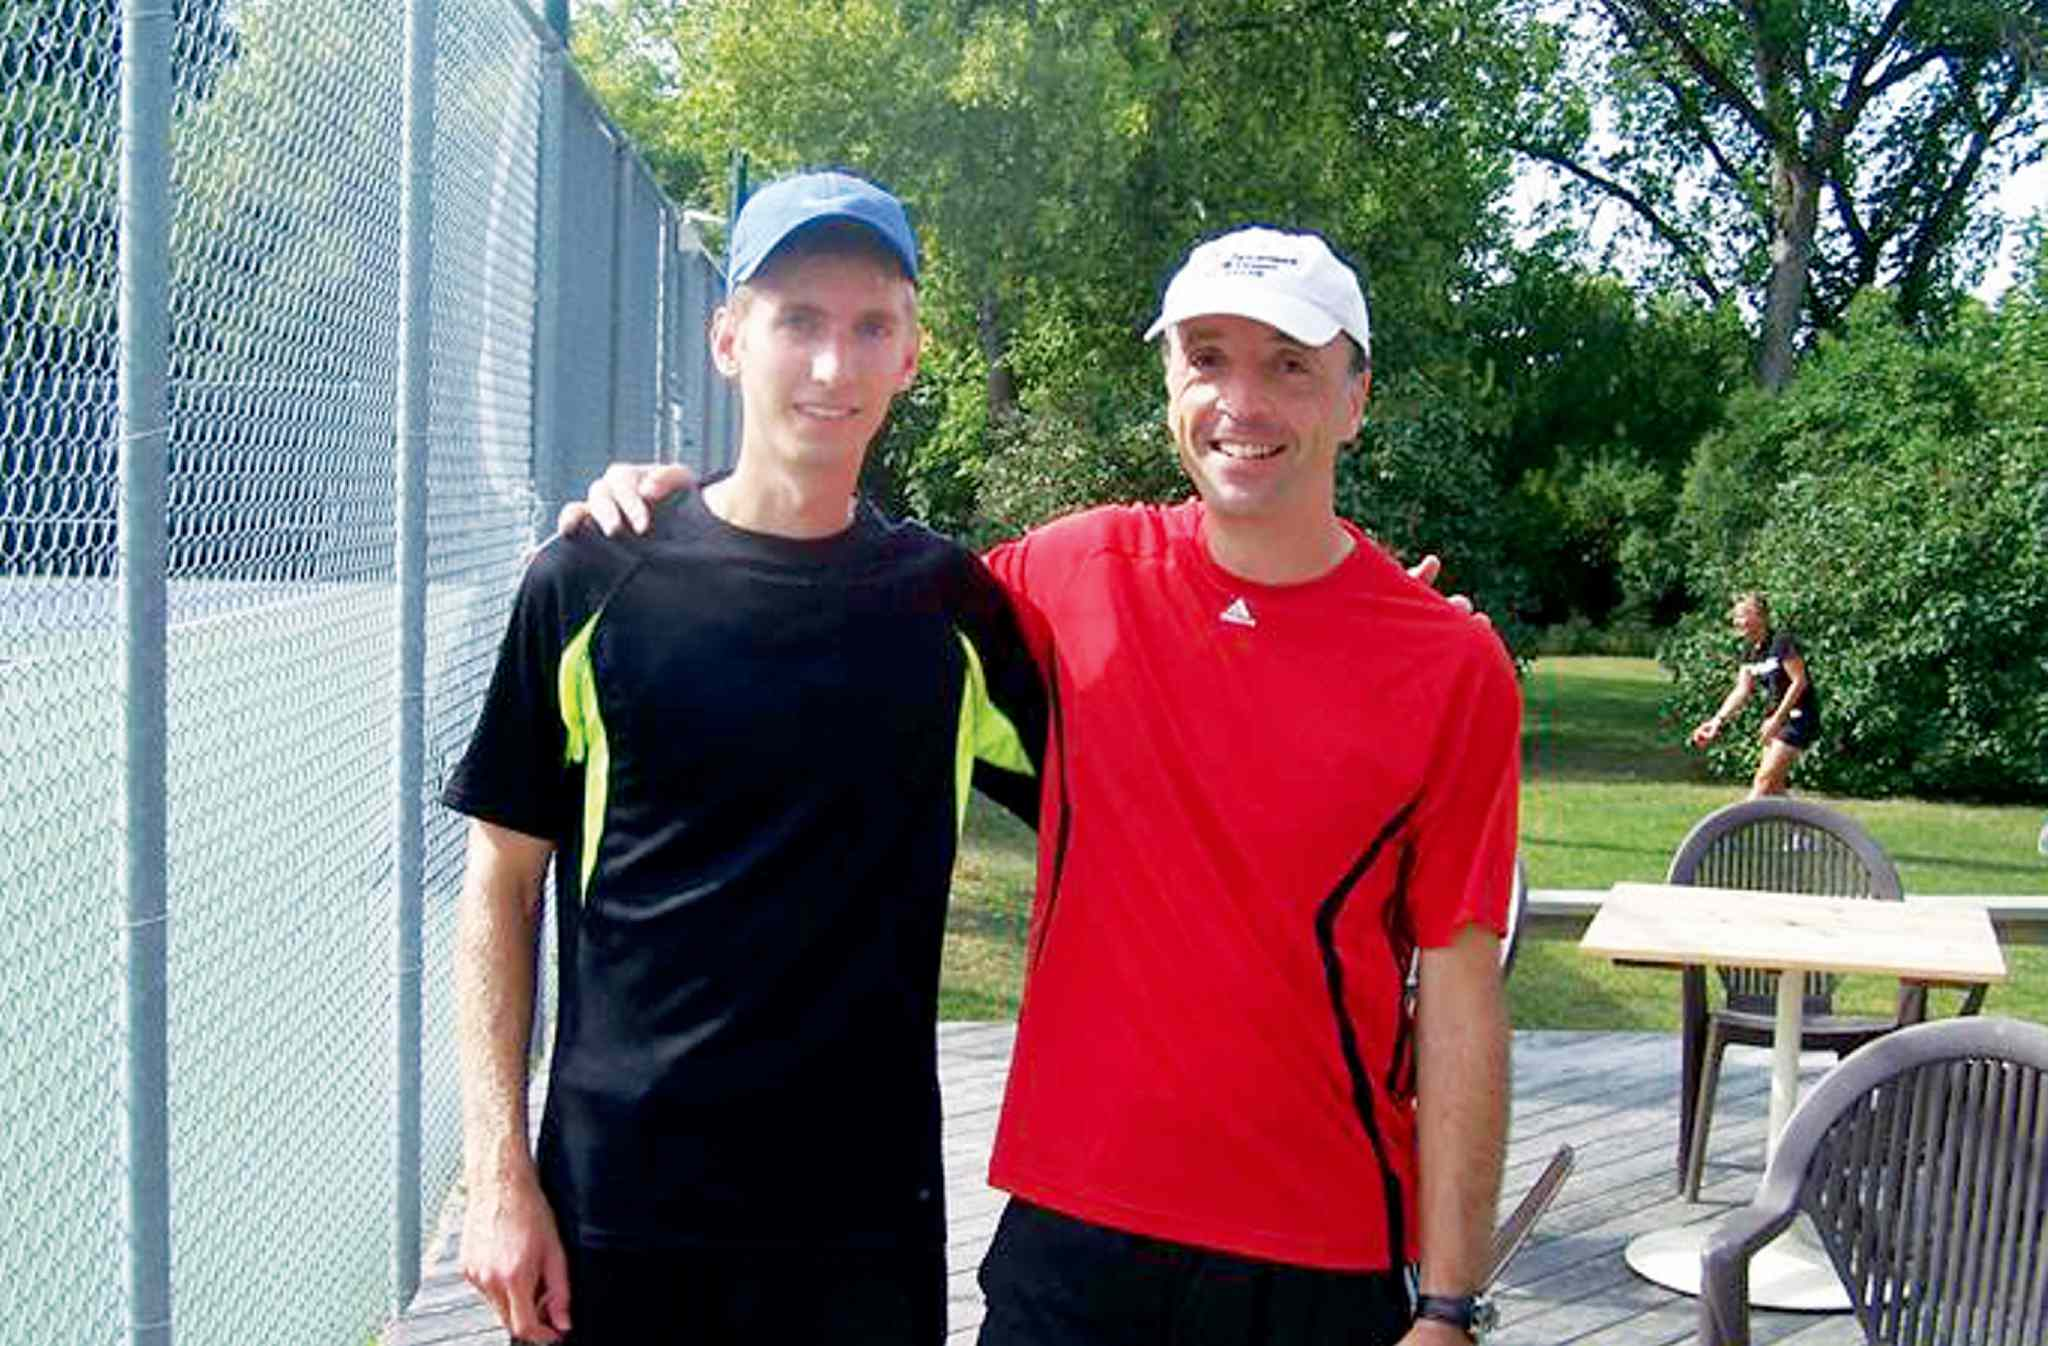 Tennis for Siloam organizer Markus Deutsch (right) is shown with Braeden, one of six players who participated playing against the Harbour View South resident during the eight-hour tennis marathon at Kildonan Tennis Club on Sept. 7. The fundraiser for Siloam Mission raised nearly $4,000 to provide approximately 1300 meals.